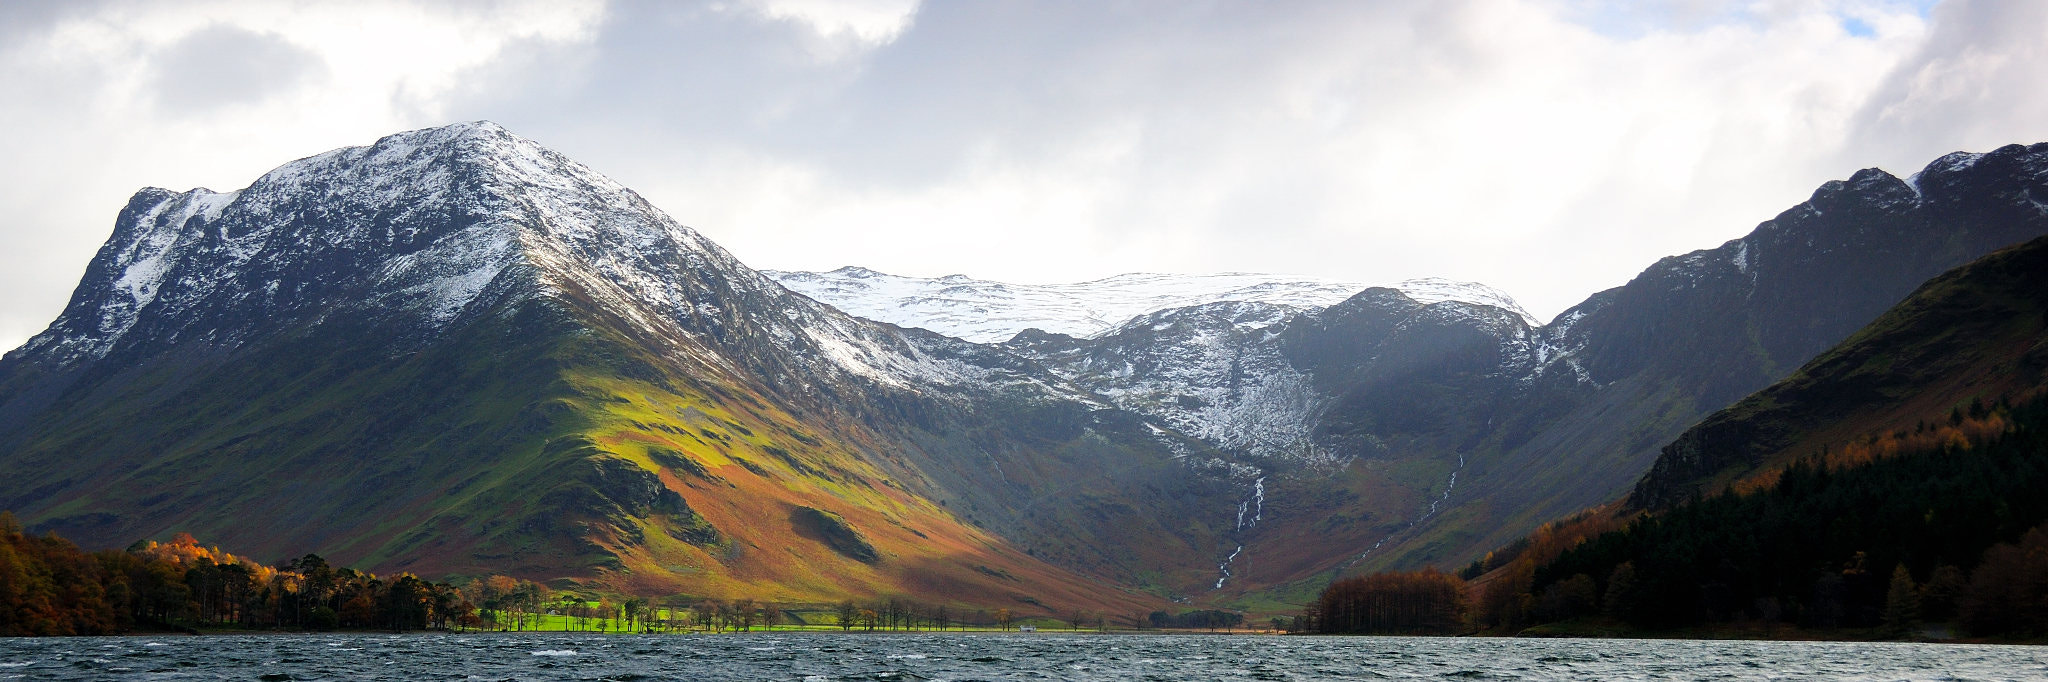 Photograph Fleetwith Pike by Marcus Sgro on 500px